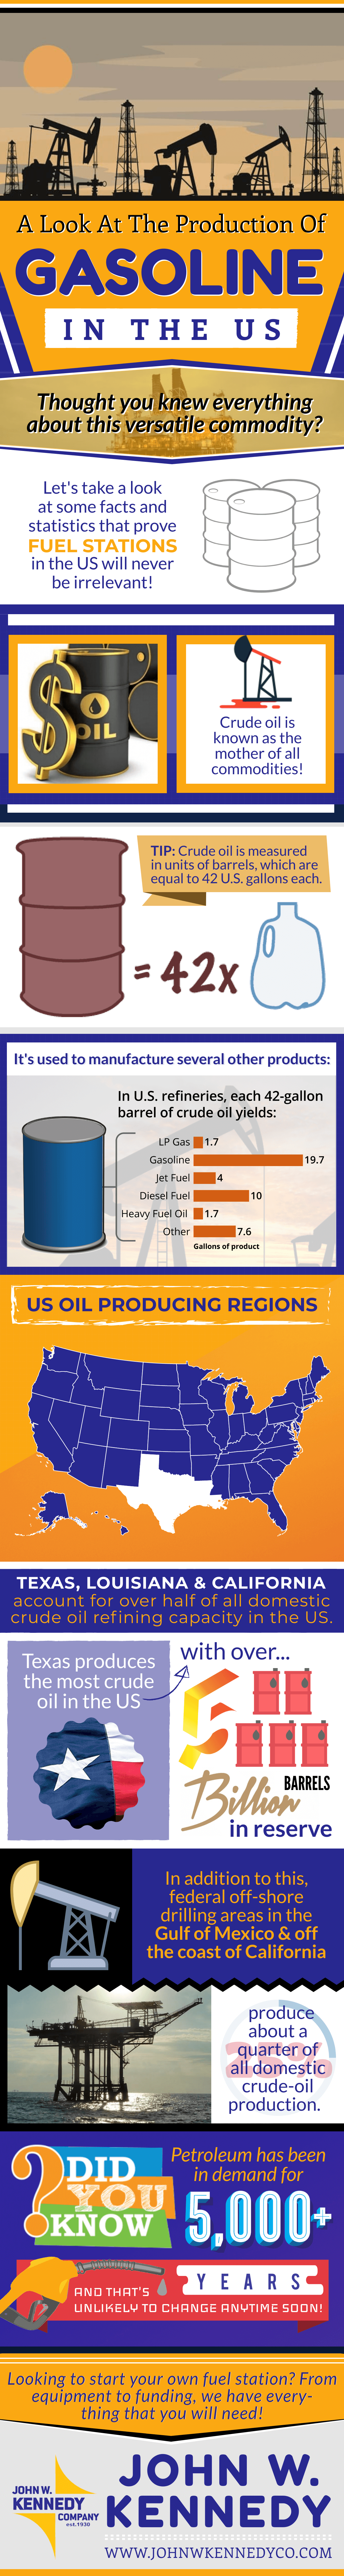 The Production of Gasoline in The US-